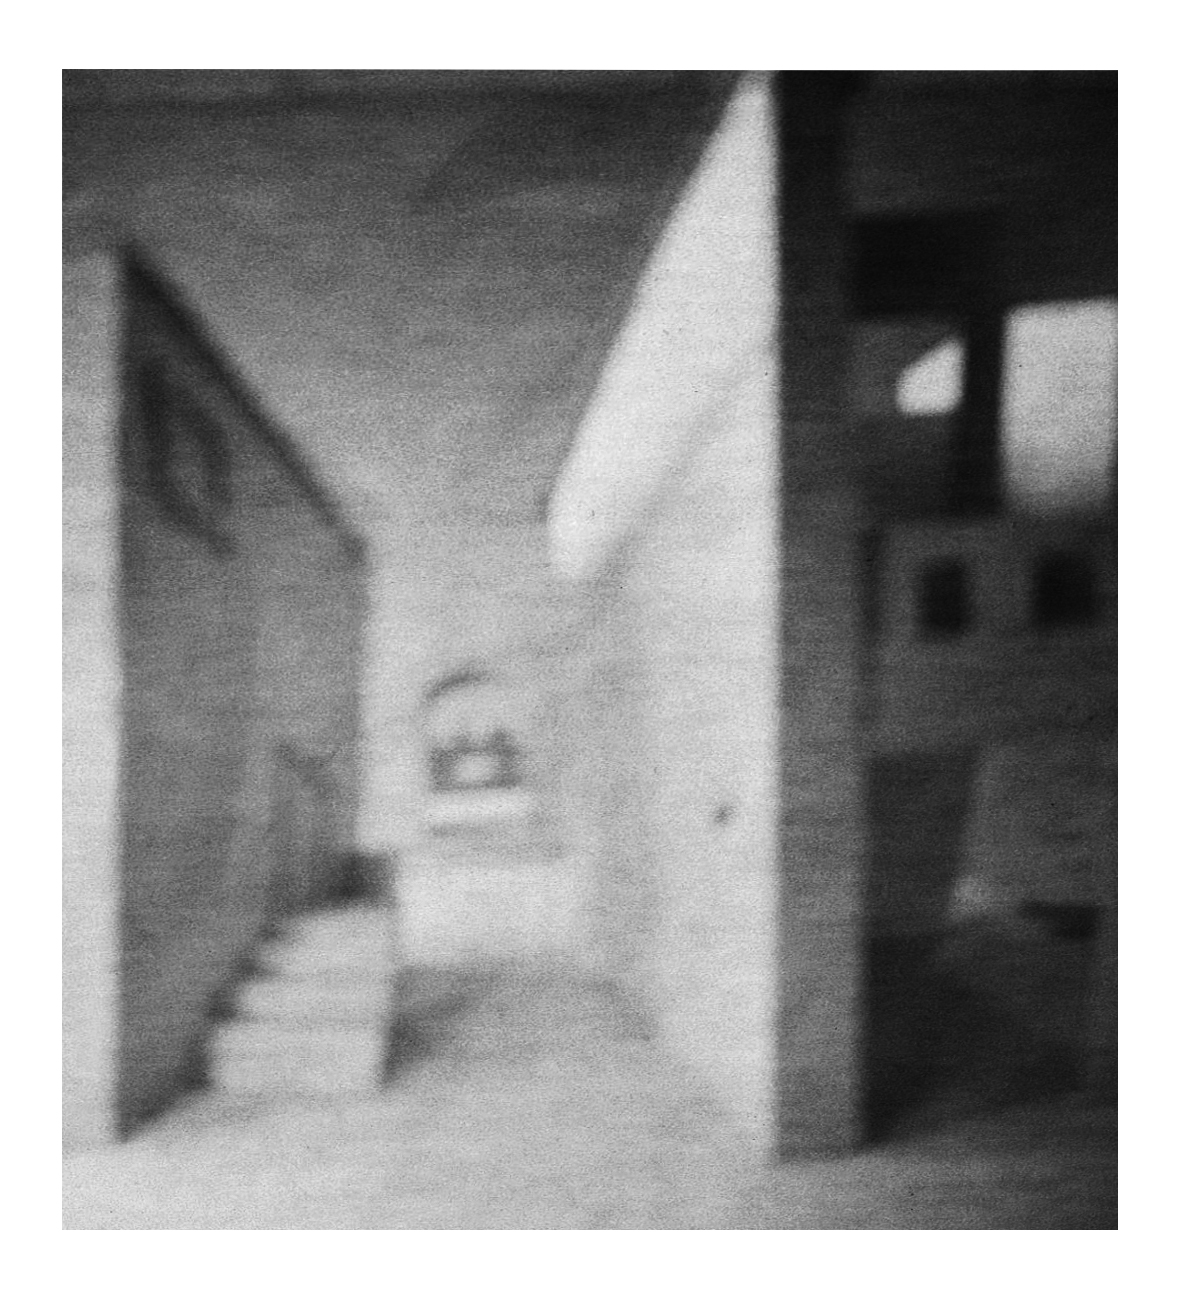 'After Crivelli', 2012/14, pinhole photograph of a cardboard model printed on off-white cartridge paper, 29.5 x 45 cm